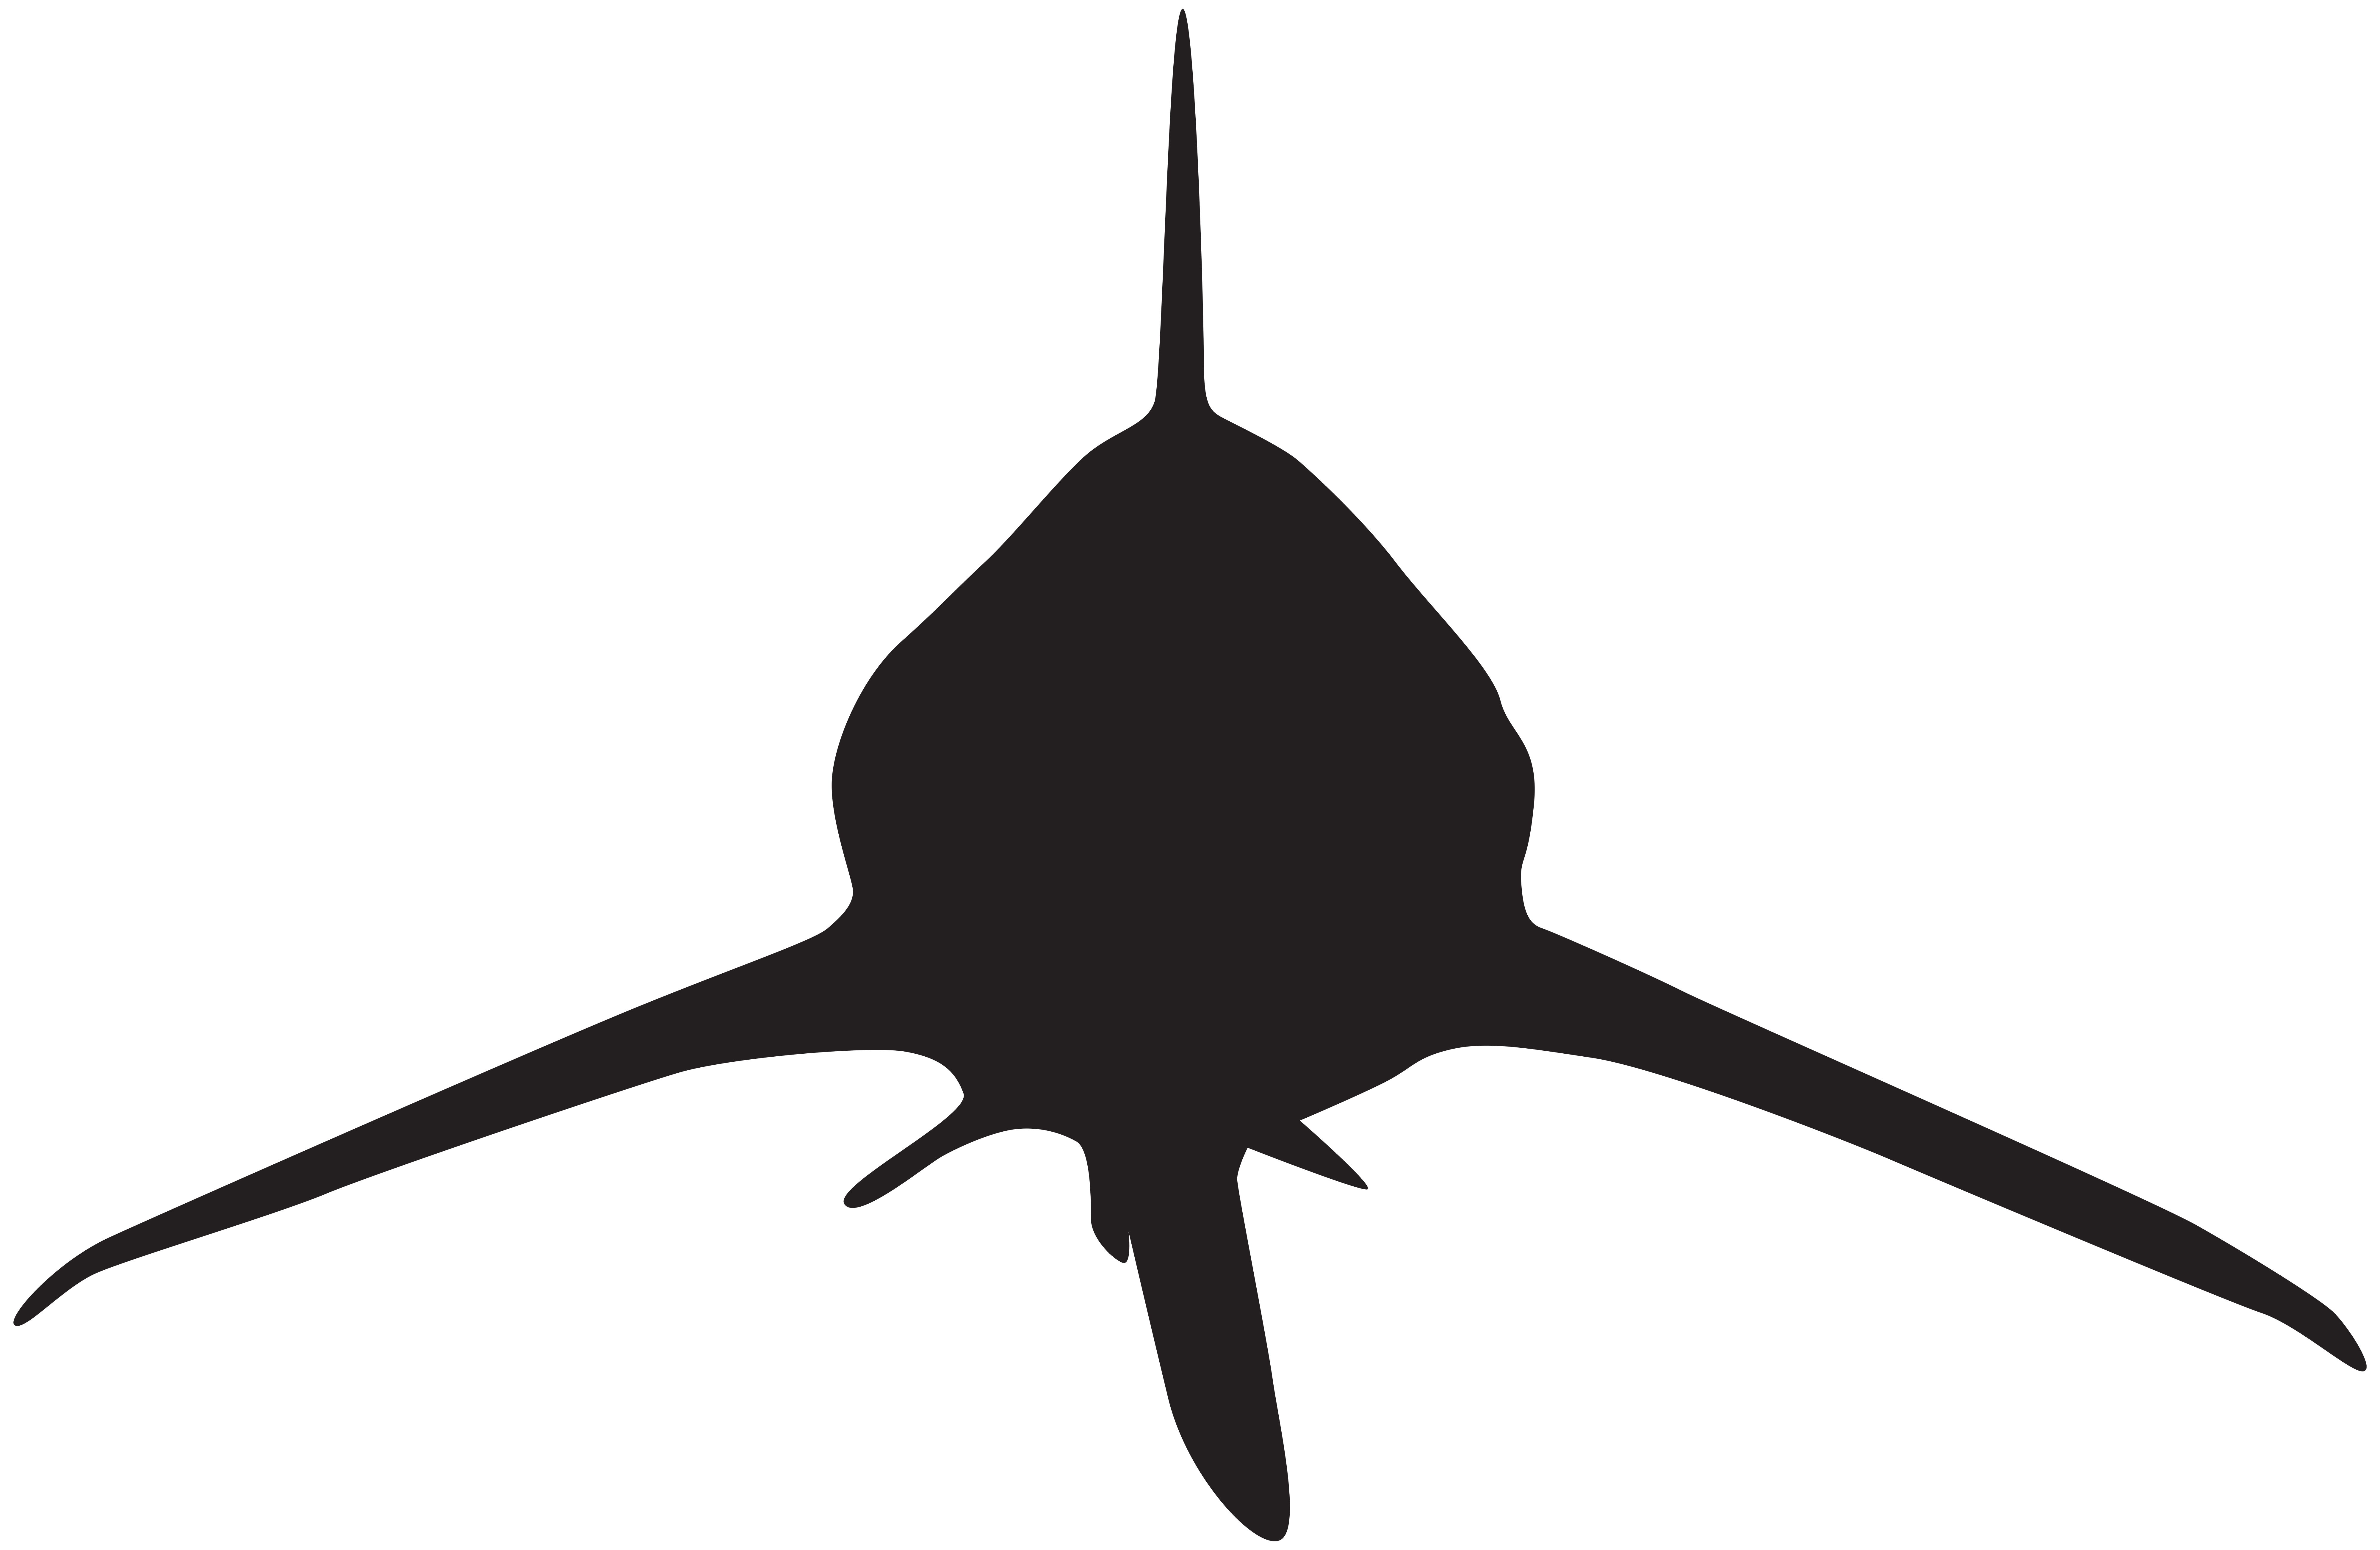 Shark attack png. Silhouette clip art image